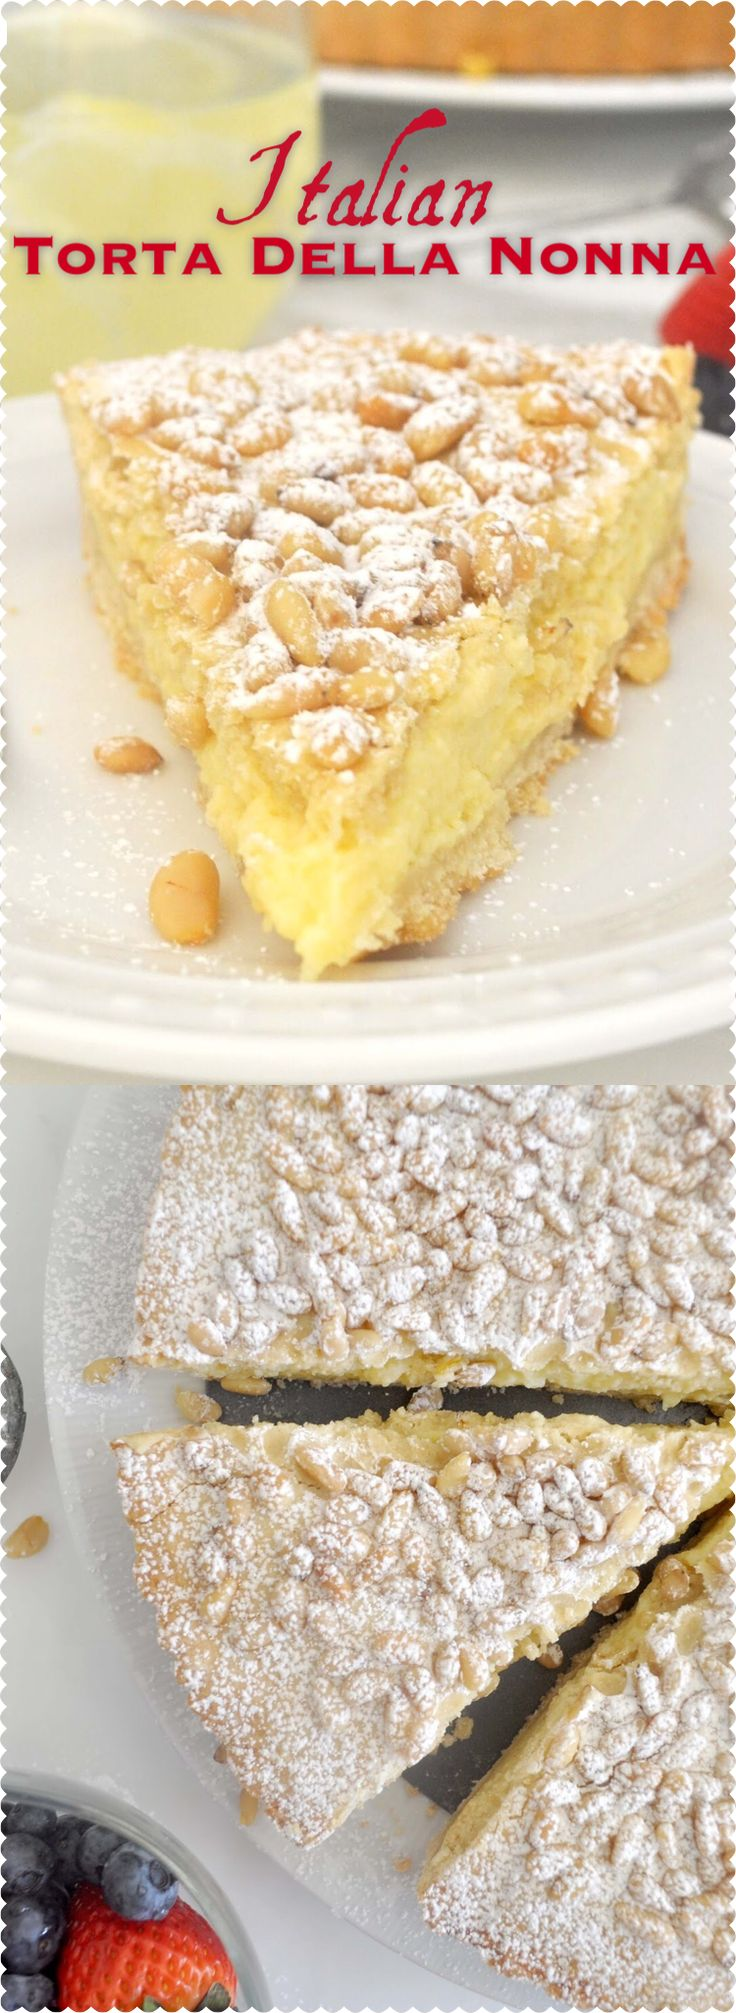 Make your day sweetly amazing with this crumbly and soft pastry filled with rich and delicate custard cream, and topped with tasty pine nuts